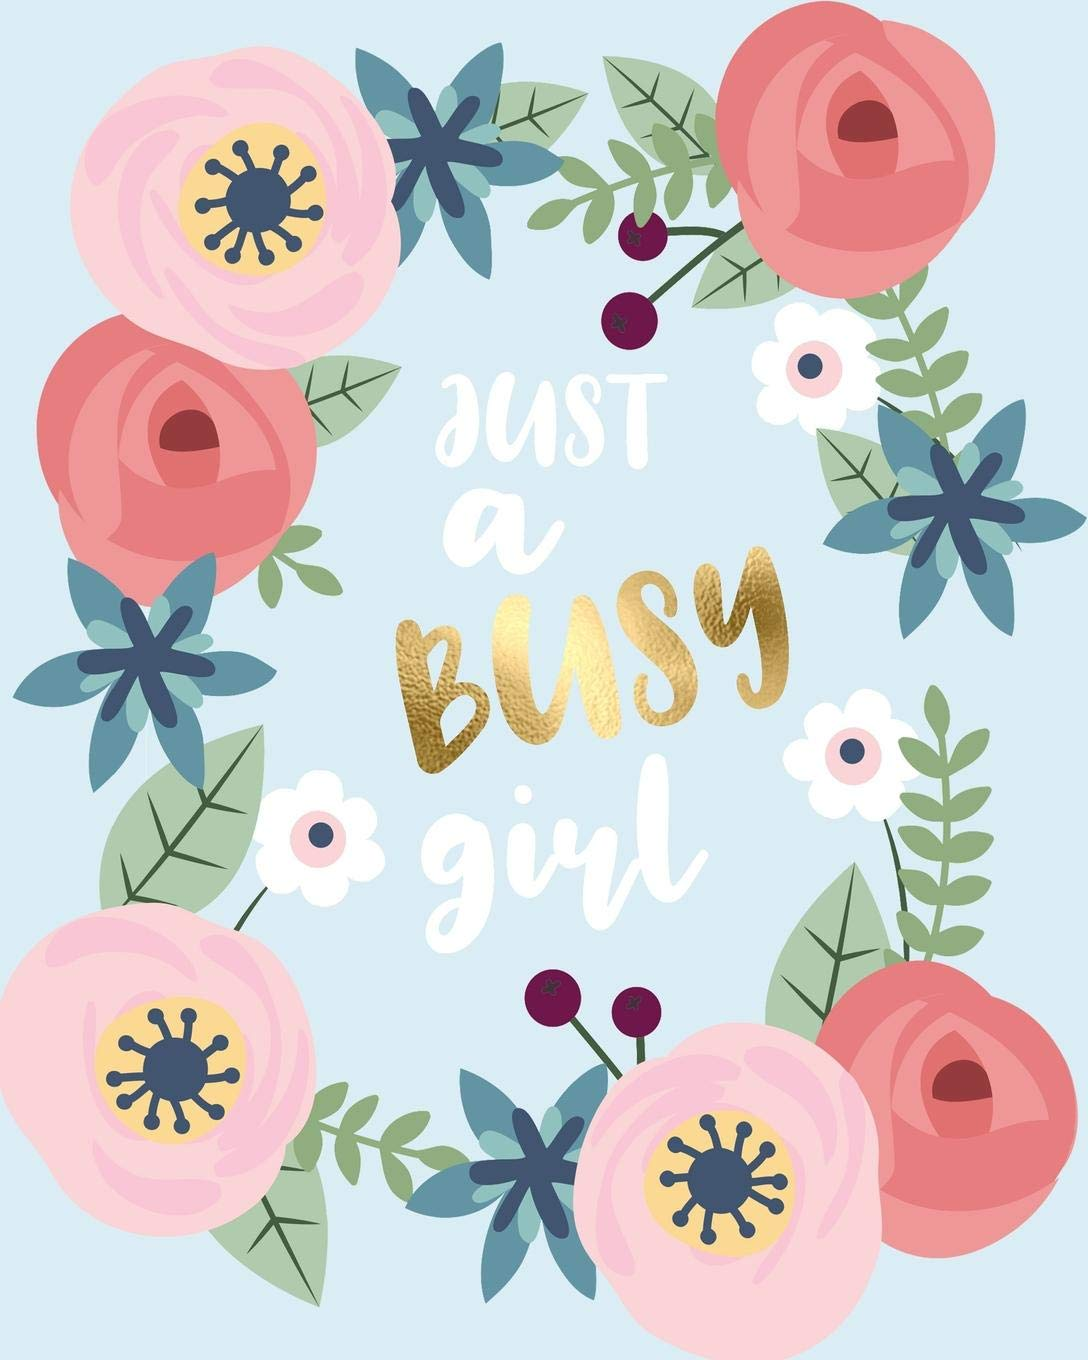 Amazon.com: Just A Busy Girl: Diario Agenda Settimanale ...